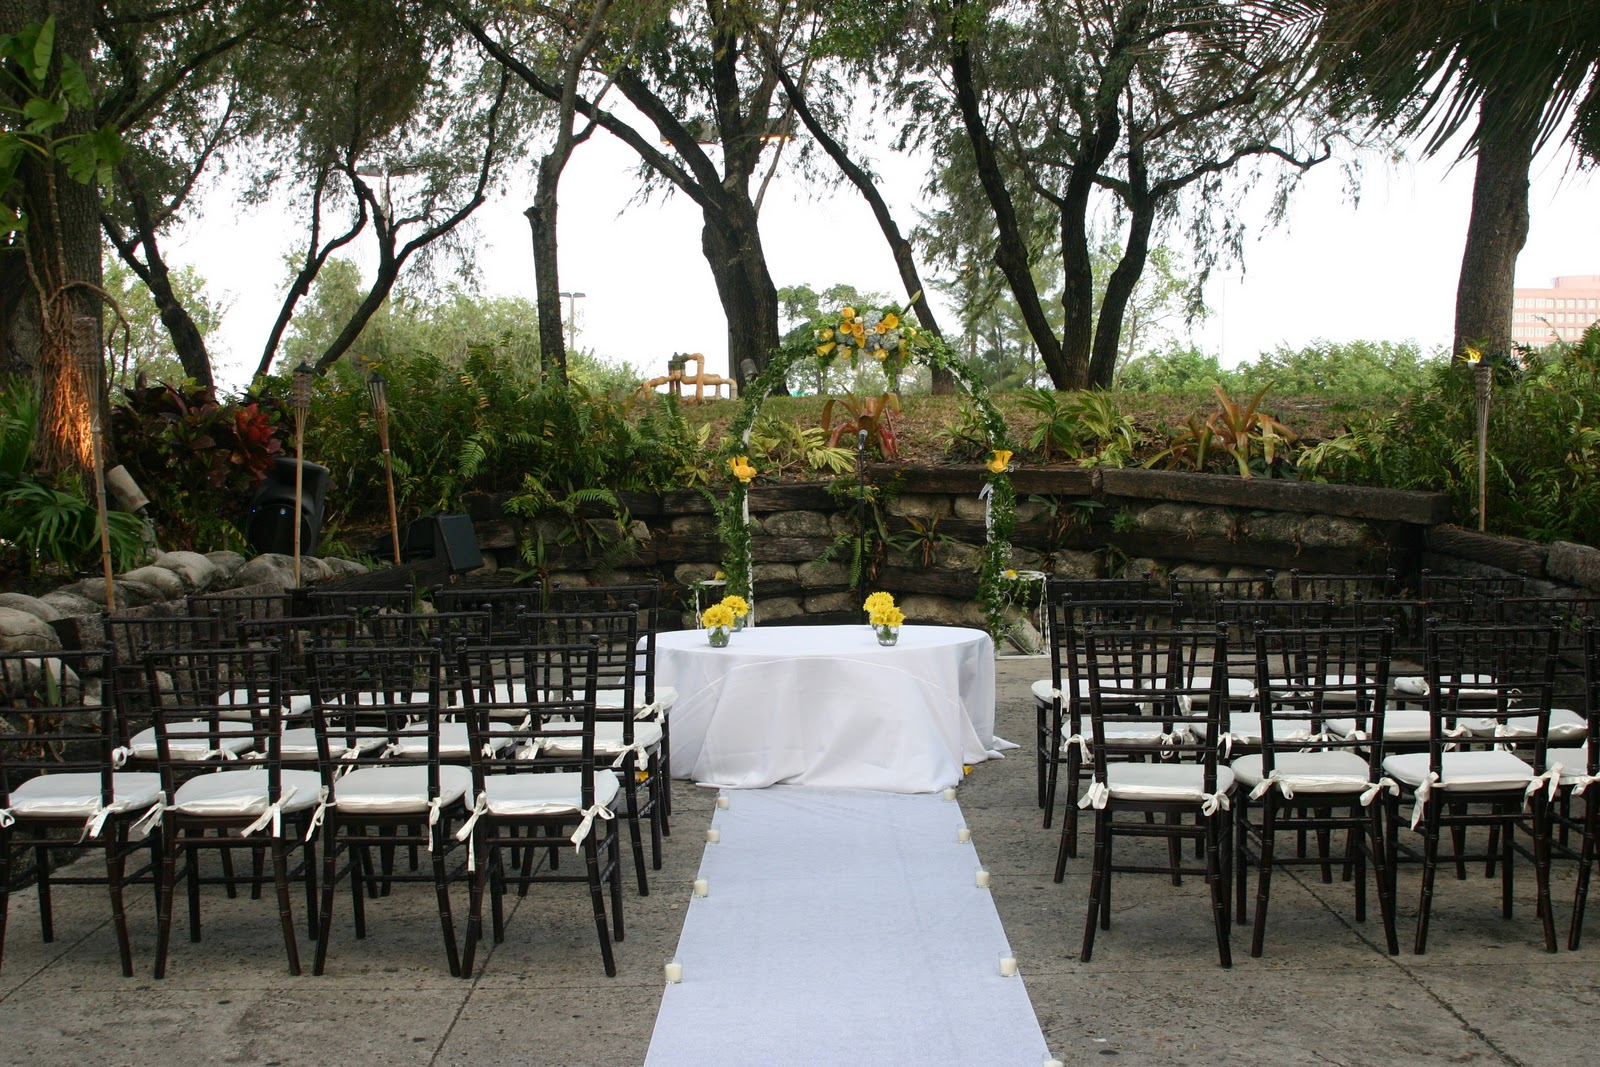 94th Aero Squadron Miami Outdoor Ceremony